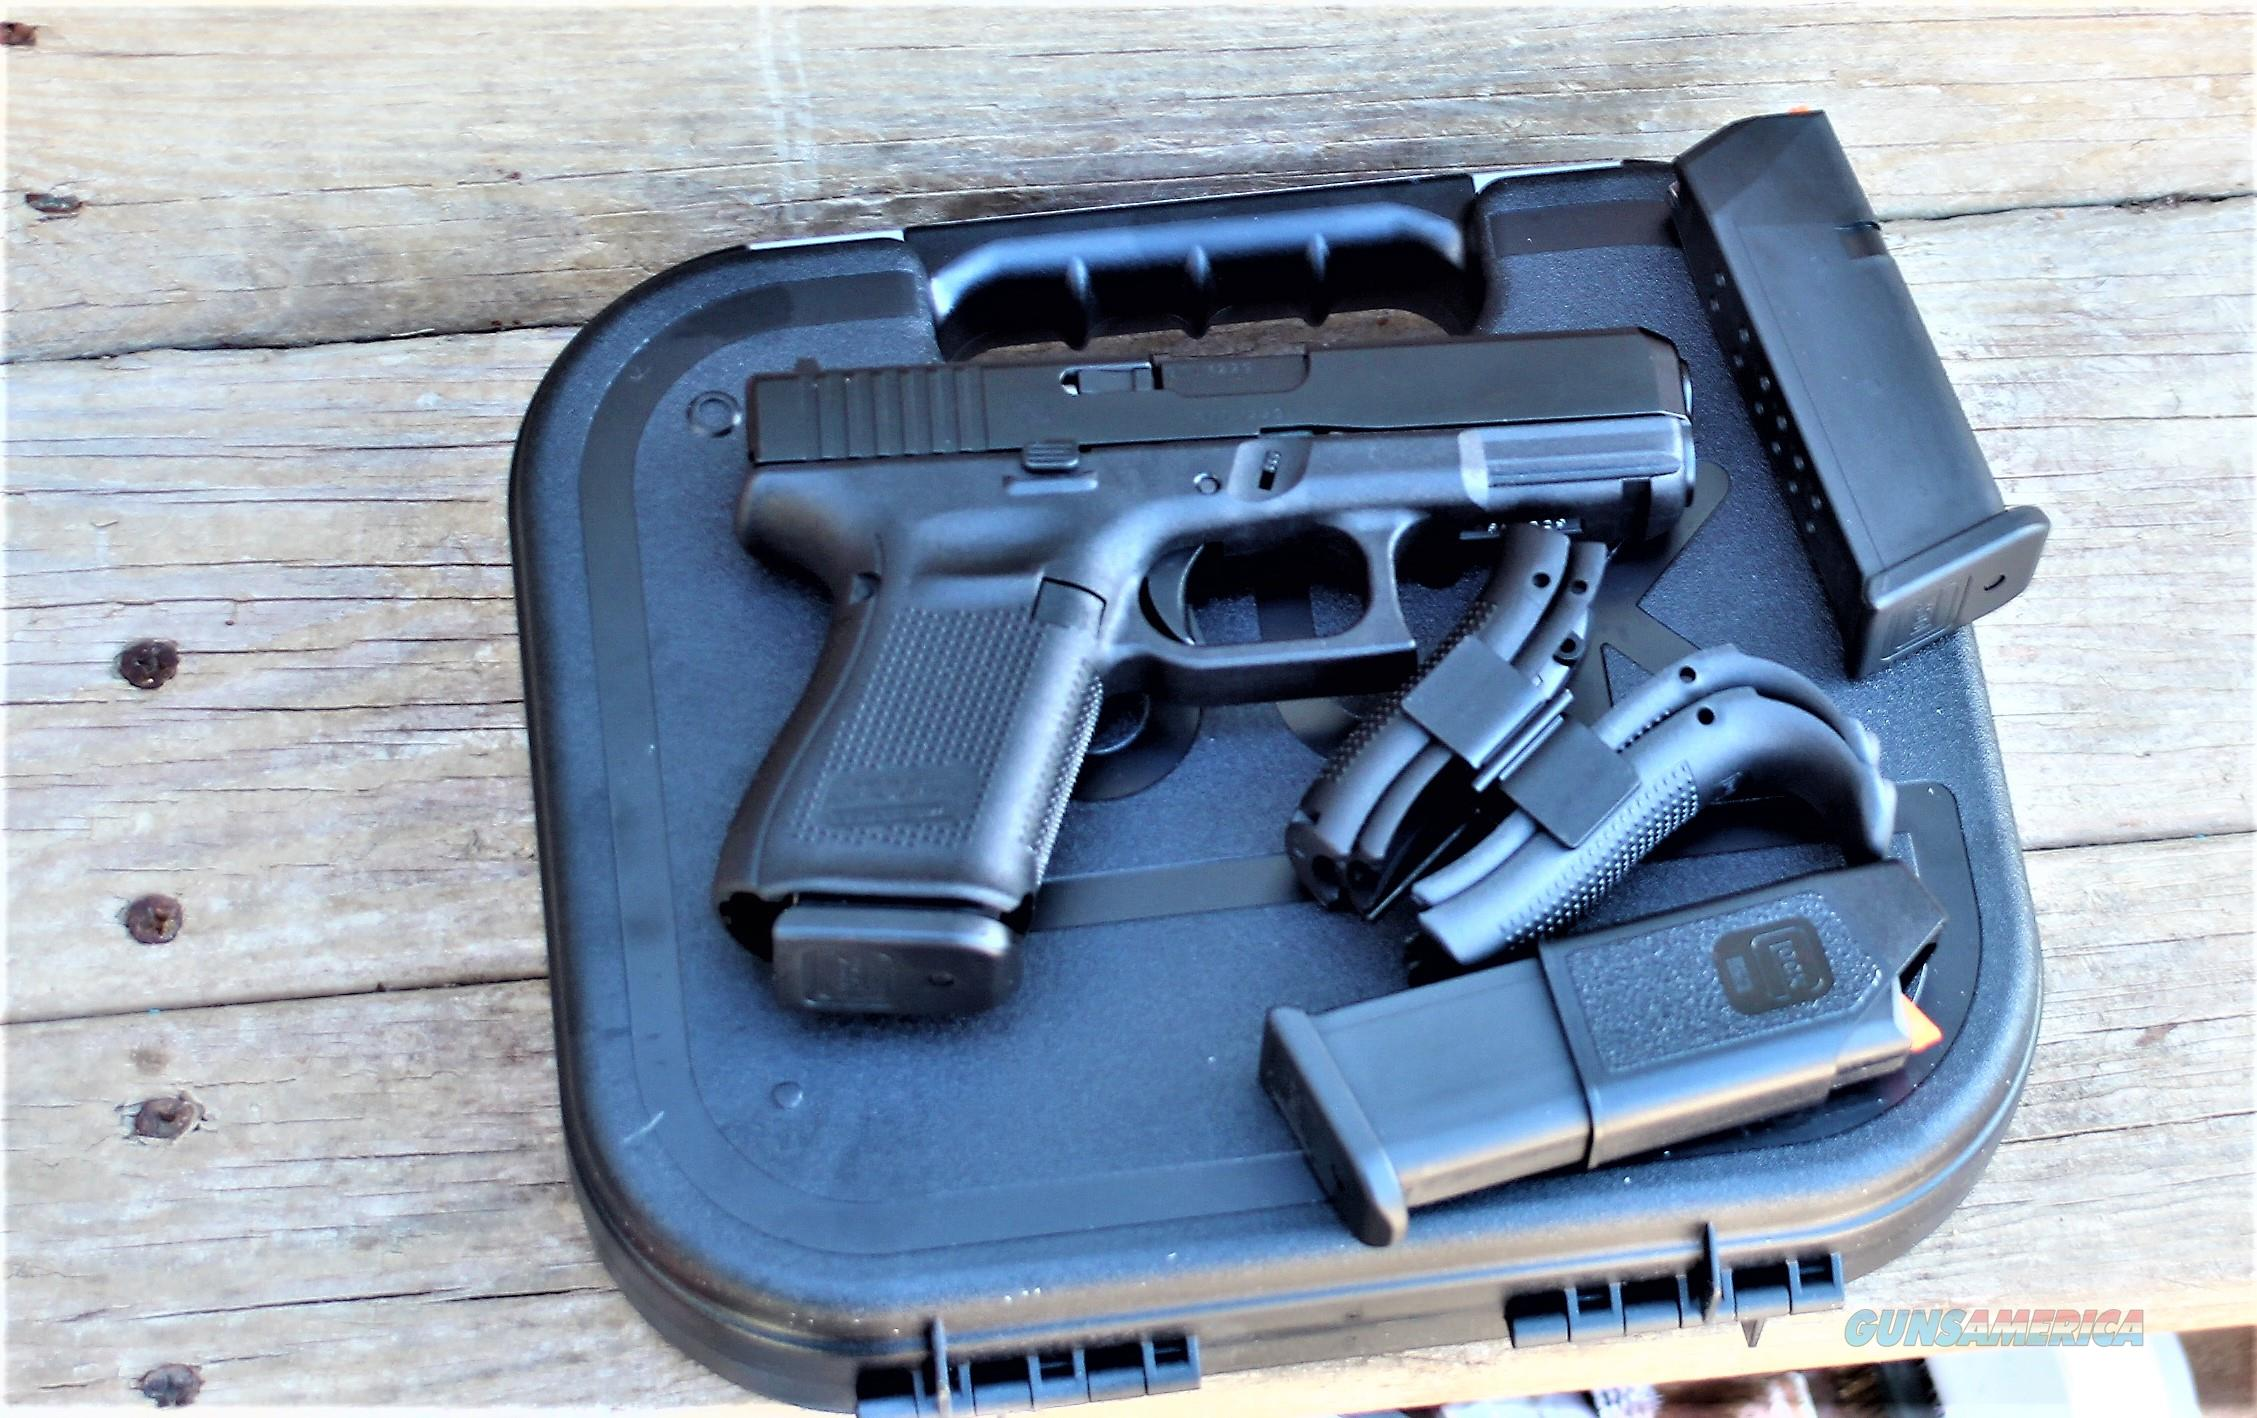 Sale EASY PAY $56 DOWN LAYAWAY 12 MONTHLY PAYMENTS GLOCK 19 G19 G-19 conceal and carry  GEN5 Compact GRIP BLK Fixed sights 9MM LUGER FS 15 SHOT BLACK GEN 5 FULL SIZE GLK BLACK POLYMER SIGHTS FIXED  3 15 RD SHOT Magazines PA1950203  Guns > Pistols > Glock Pistols > 19/19X